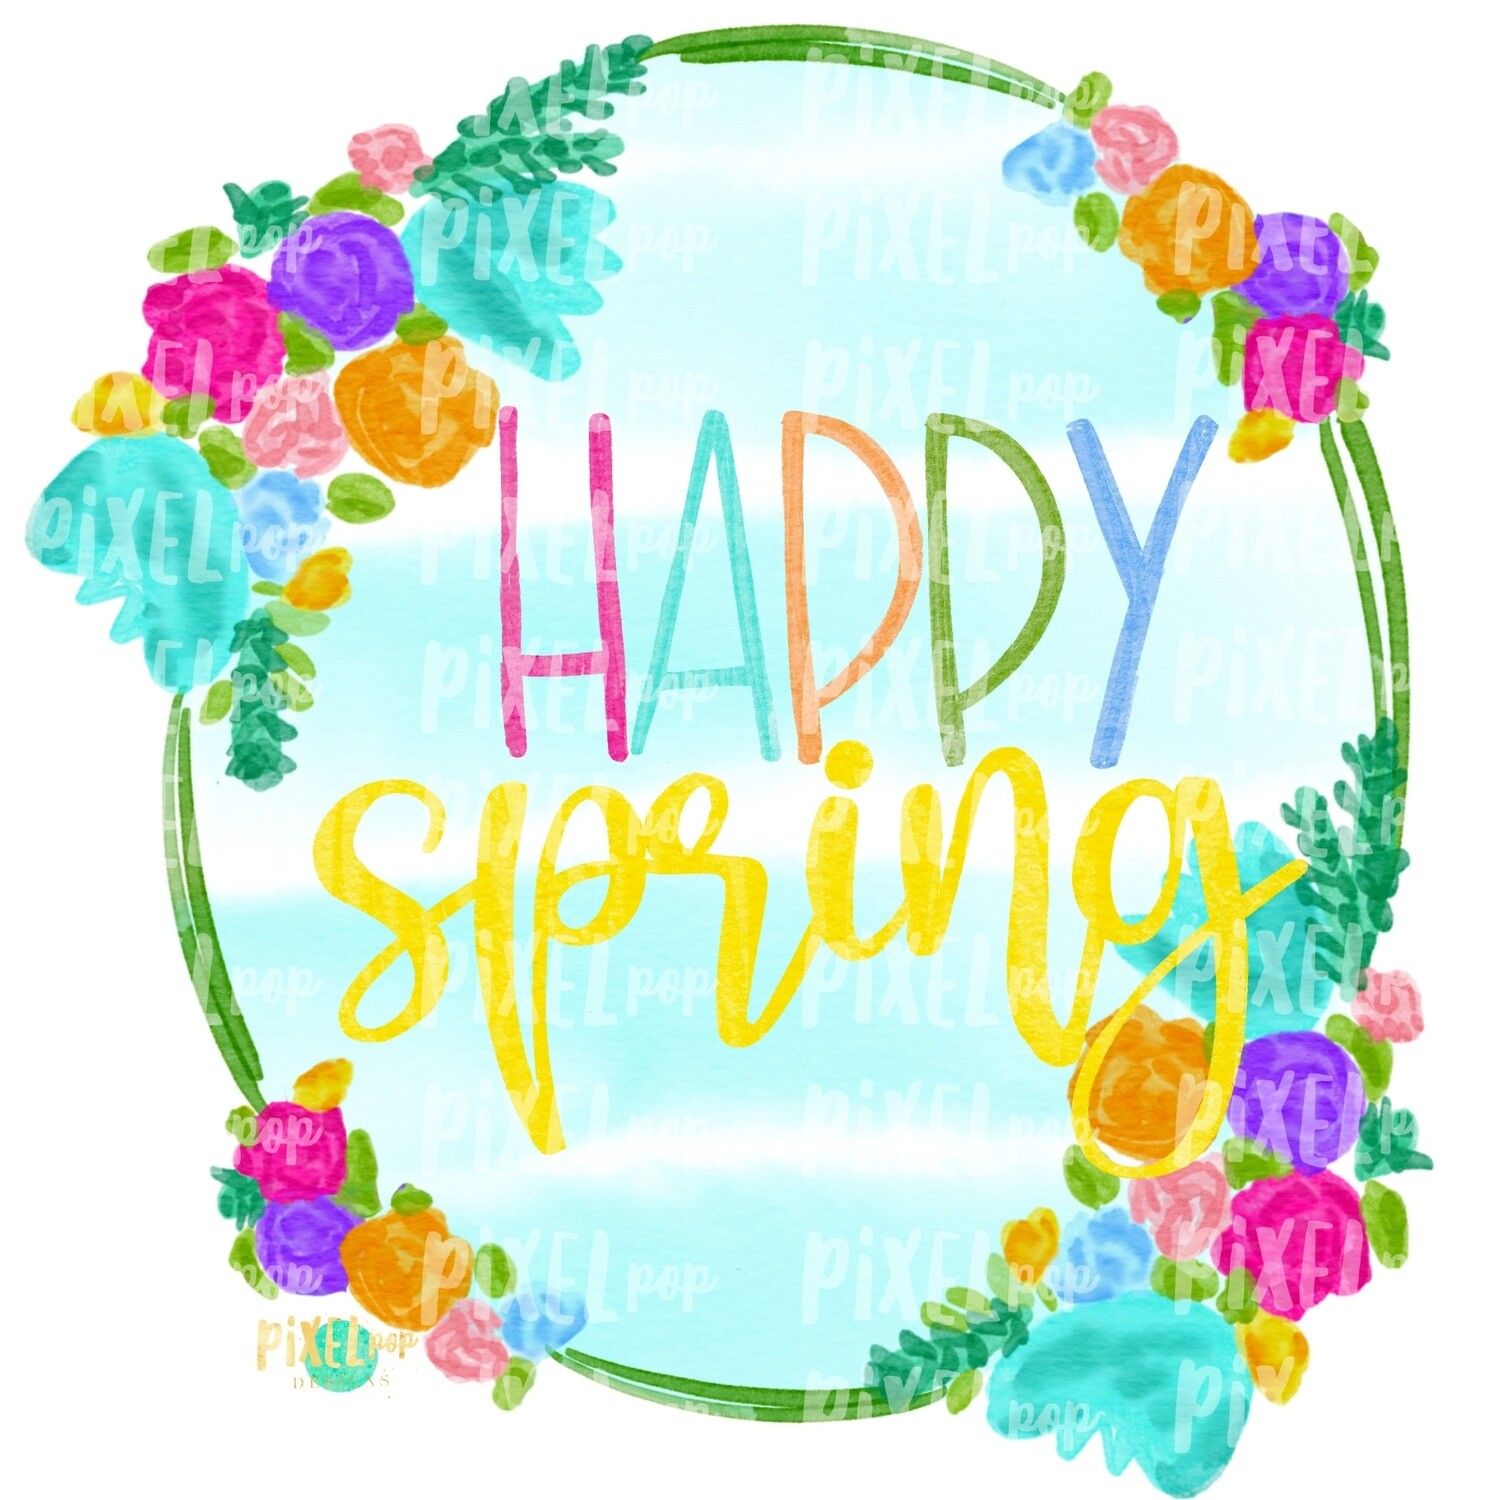 Happy Spring Watercolor Floral Striped Wreath Sublimation PNG   Digital Painting   Spring Flowers   Flower Wreath   Watercolor Floral Art